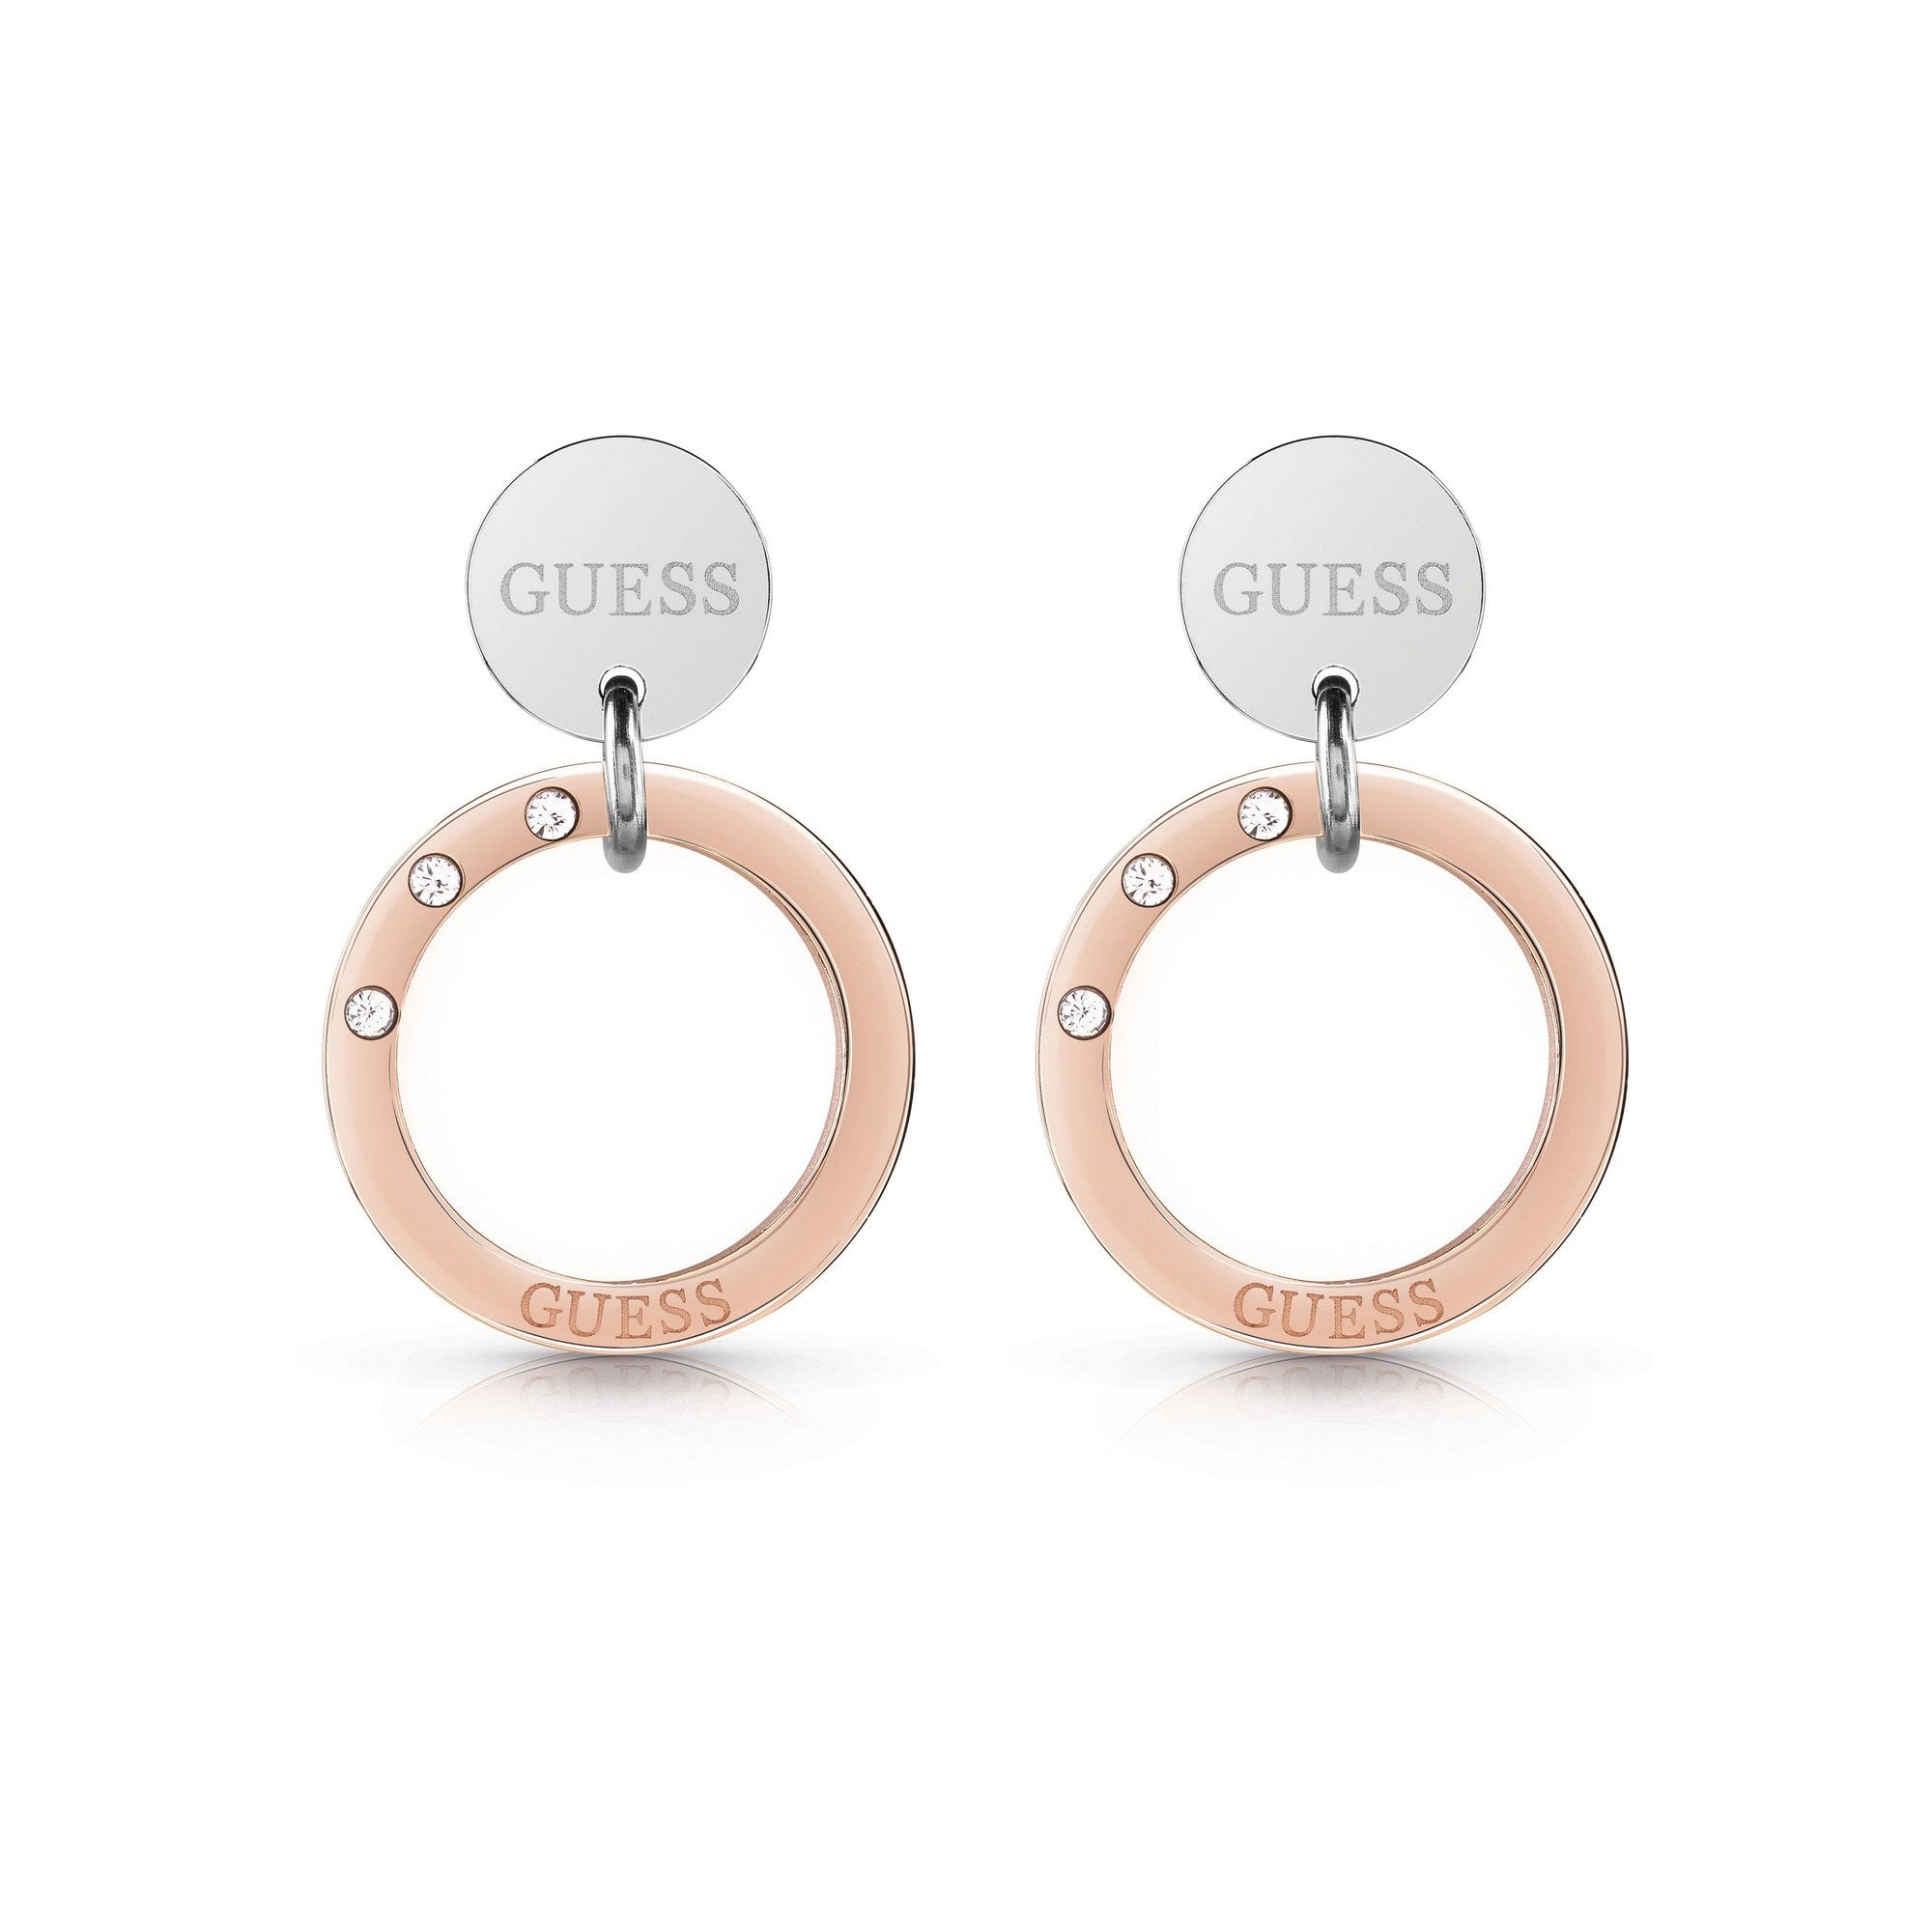 Guess Logo Coin Circle Silver Rose Gold Earrings Ube29033